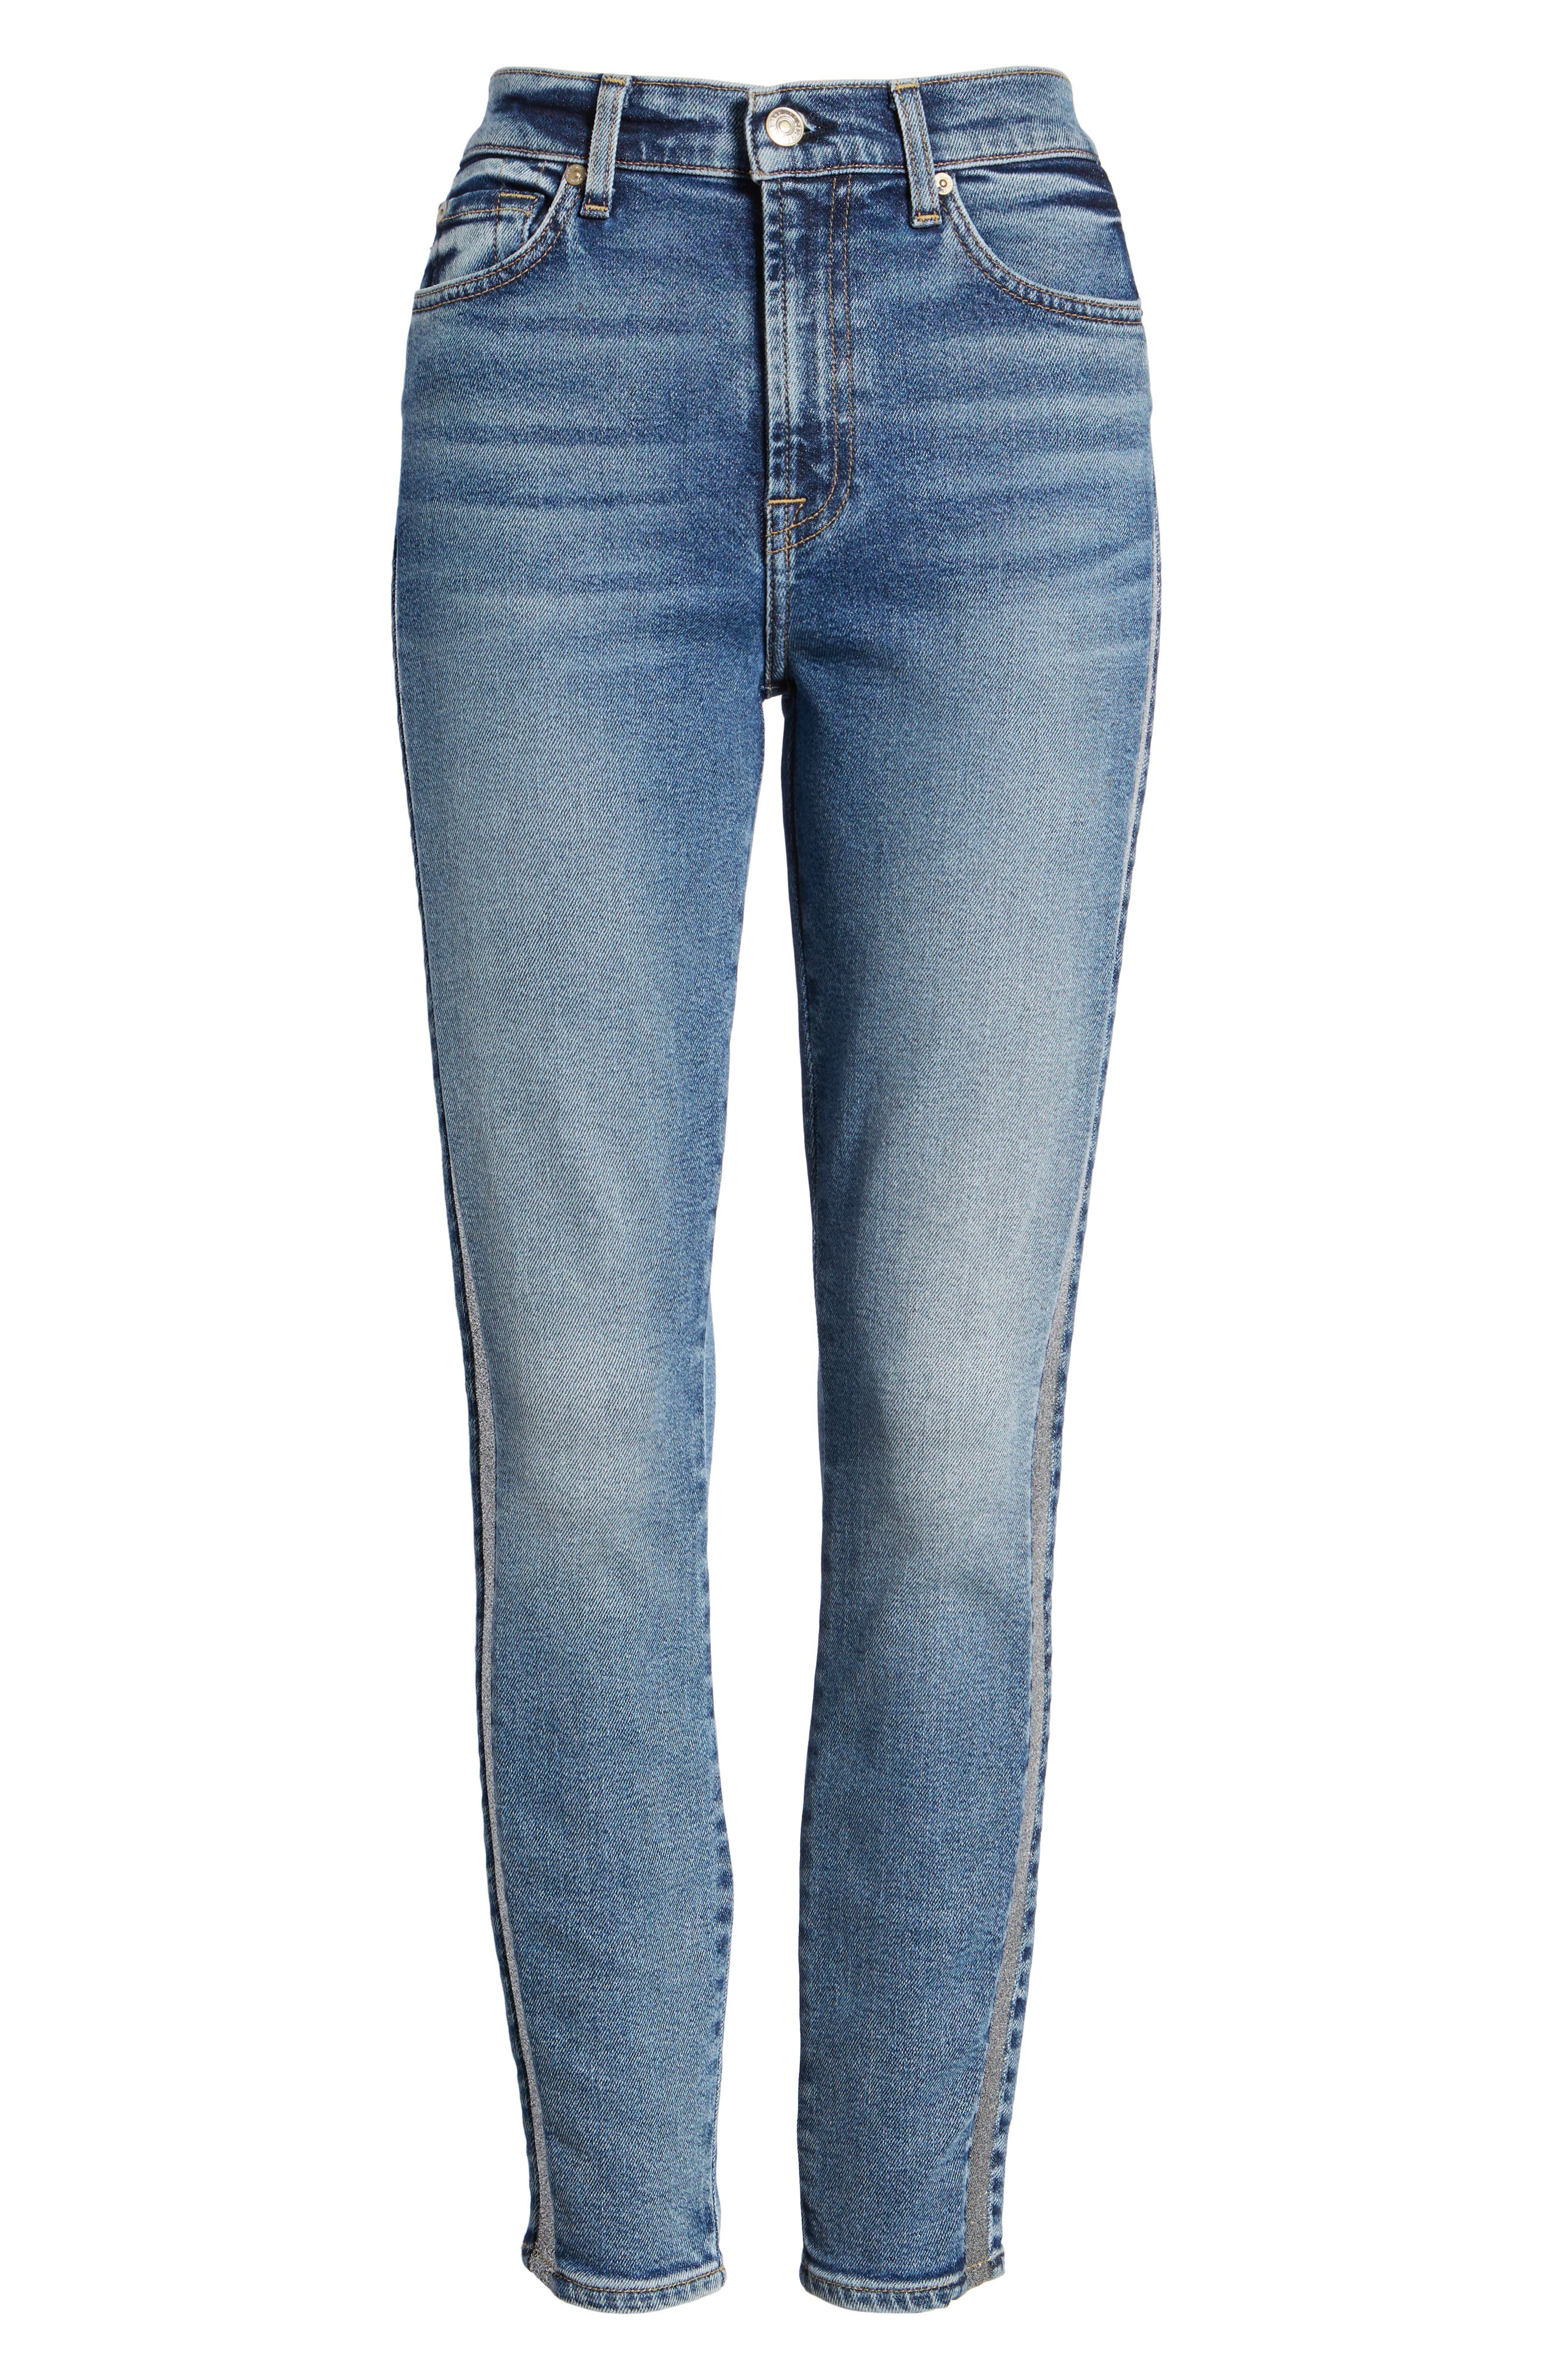 7 FOR ALL MANKIND<SUP>®</SUP>, Luxe Vintage Side Stripe High Waist Ankle Skinny Jeans, Alternate thumbnail 7, color, 401